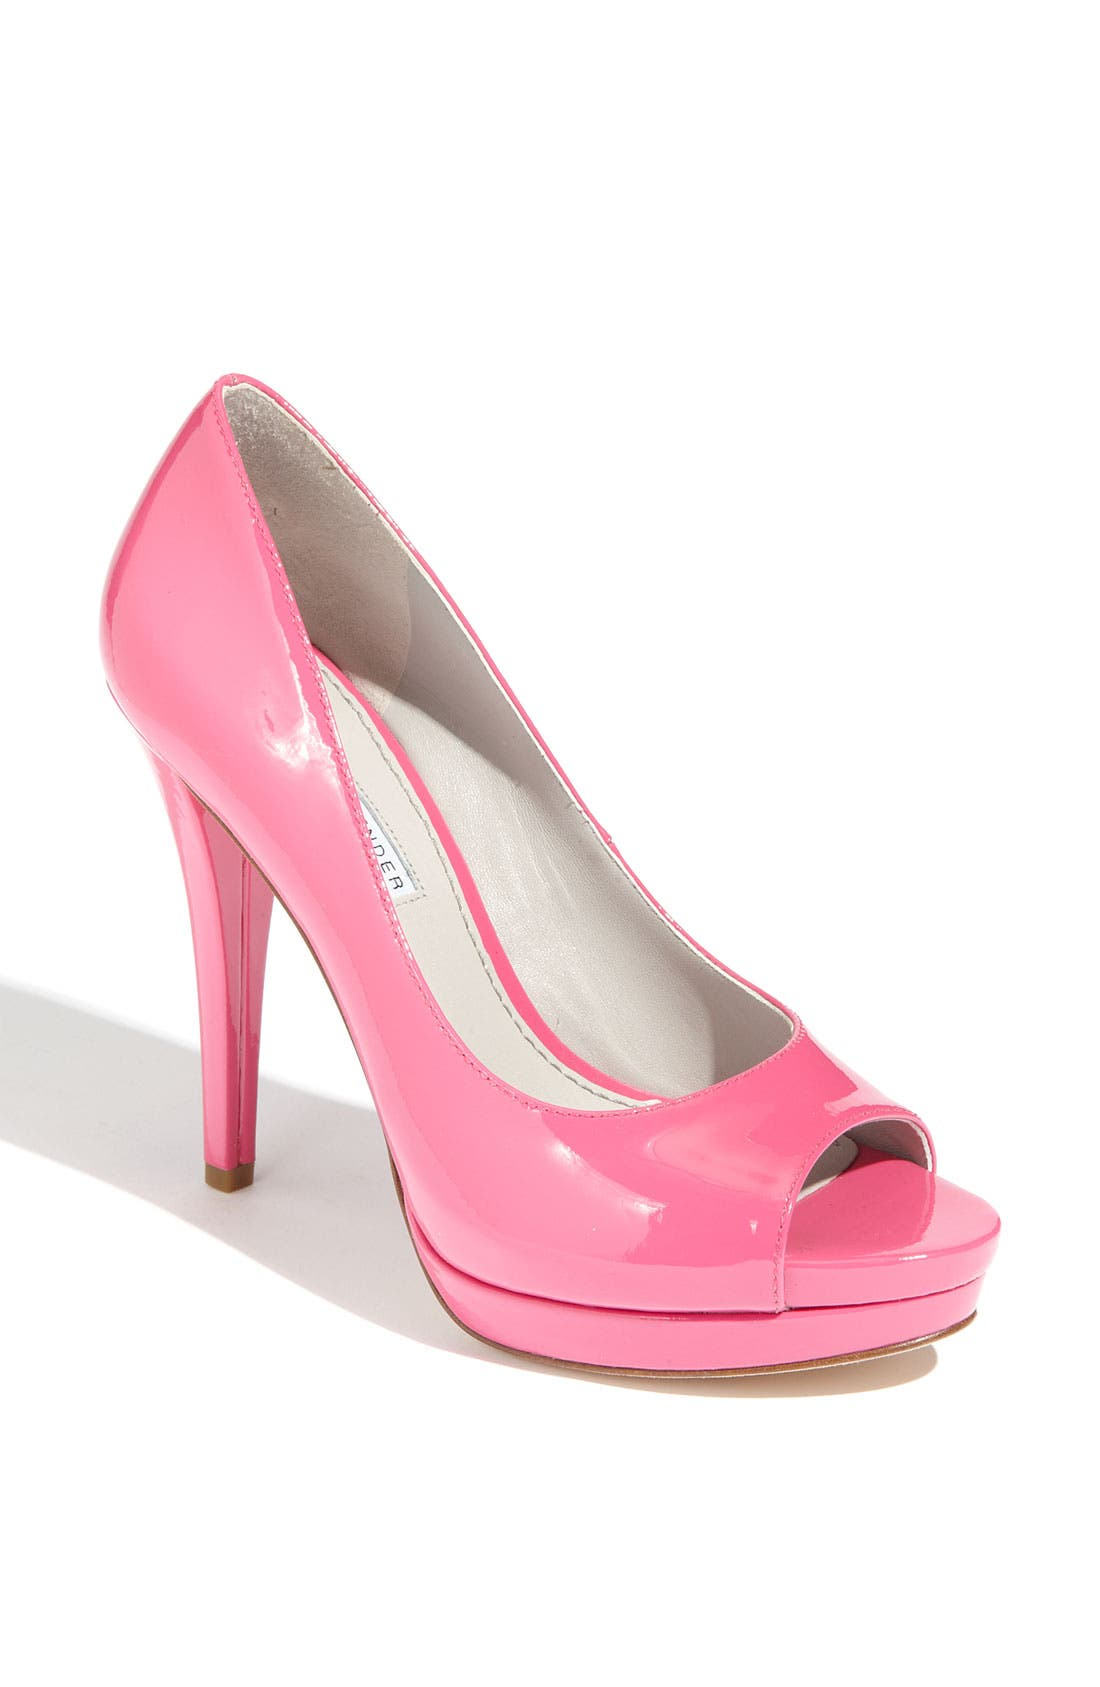 Alternate Image 1 Selected - Vera Wang Footwear 'Selima' Pump